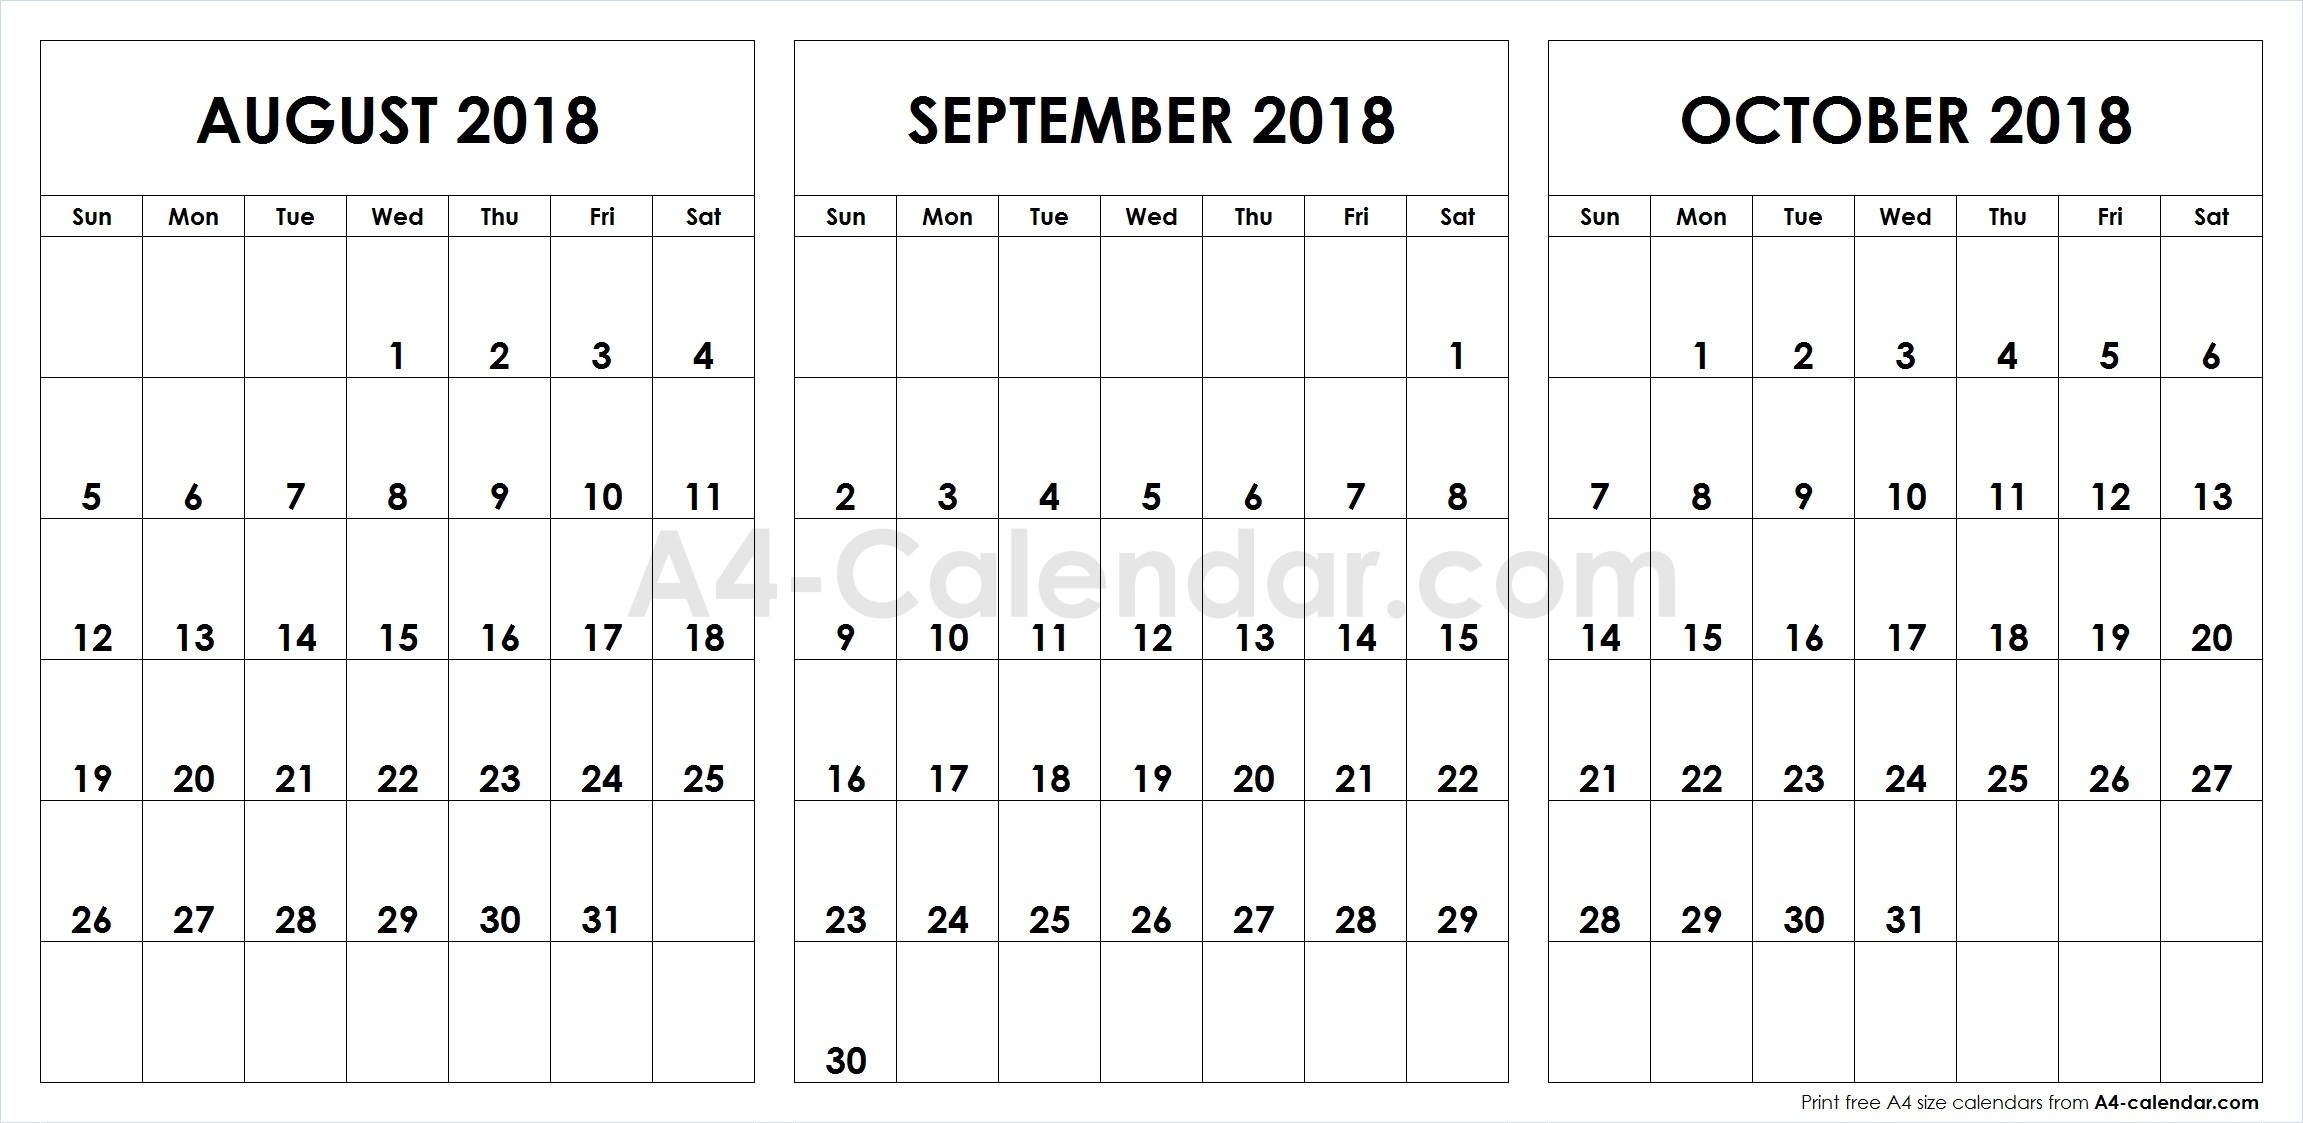 Catch Calender For August September Octoer